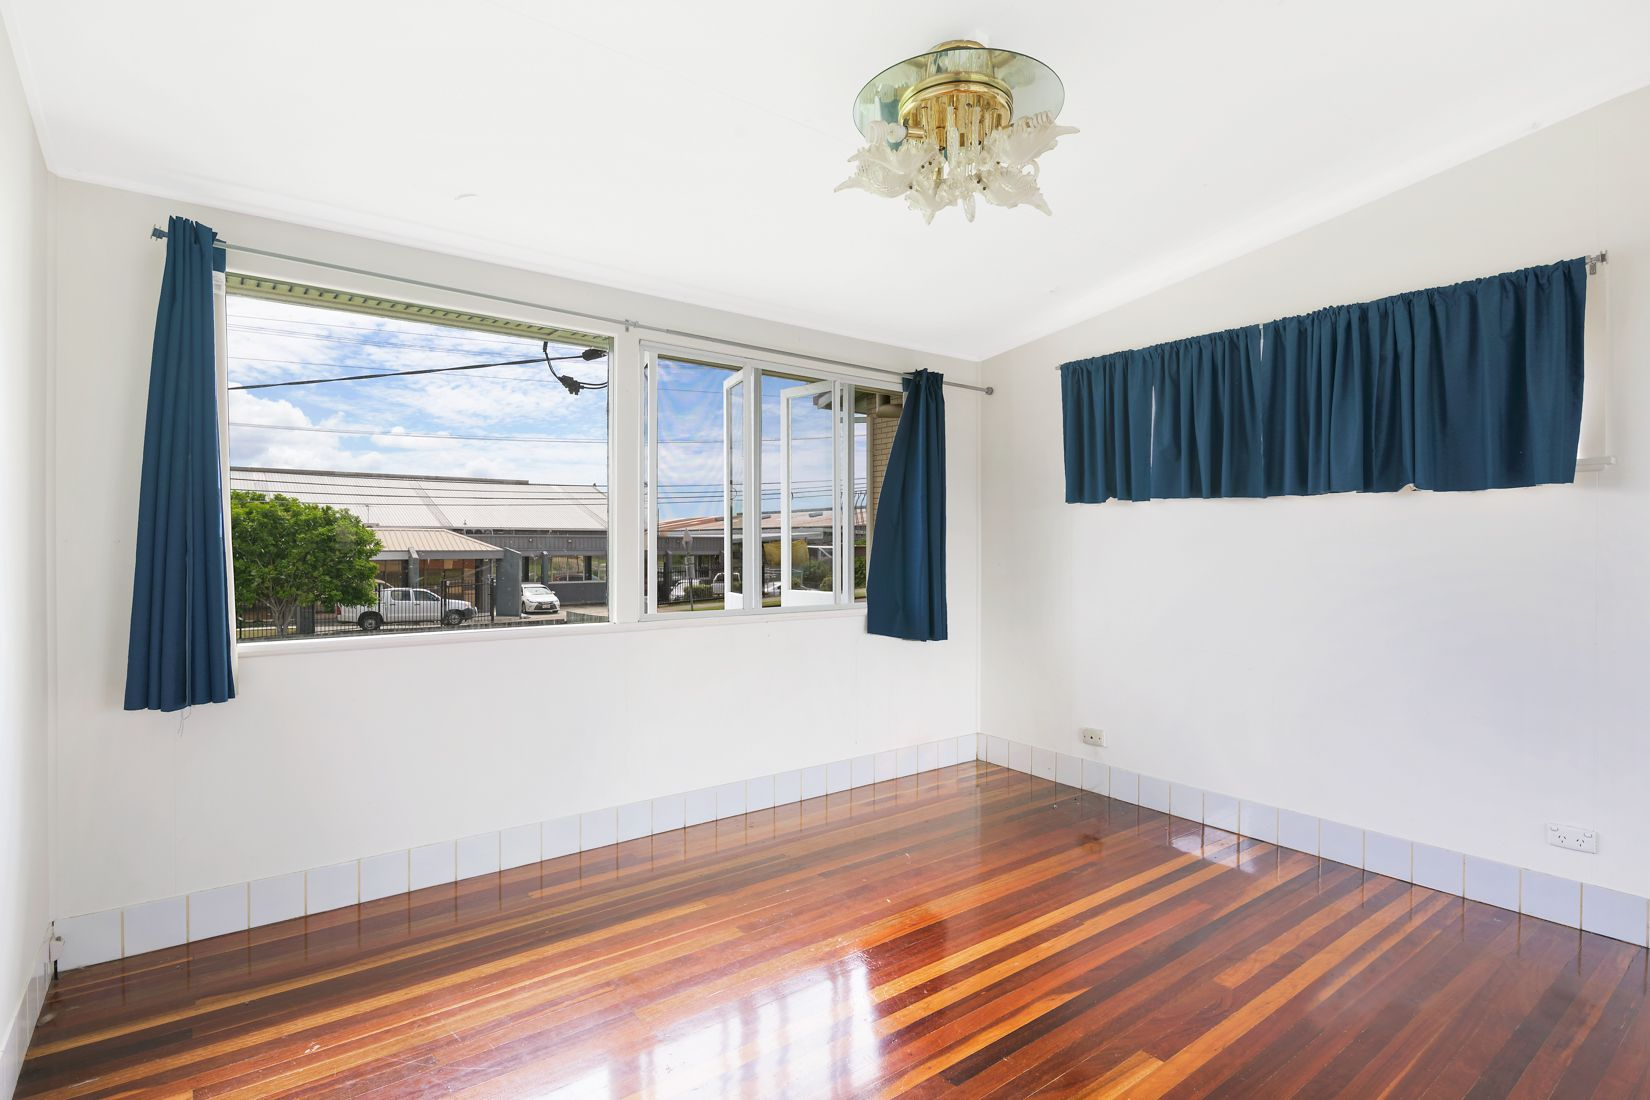 512 Zillmere Road Zillmere 4034